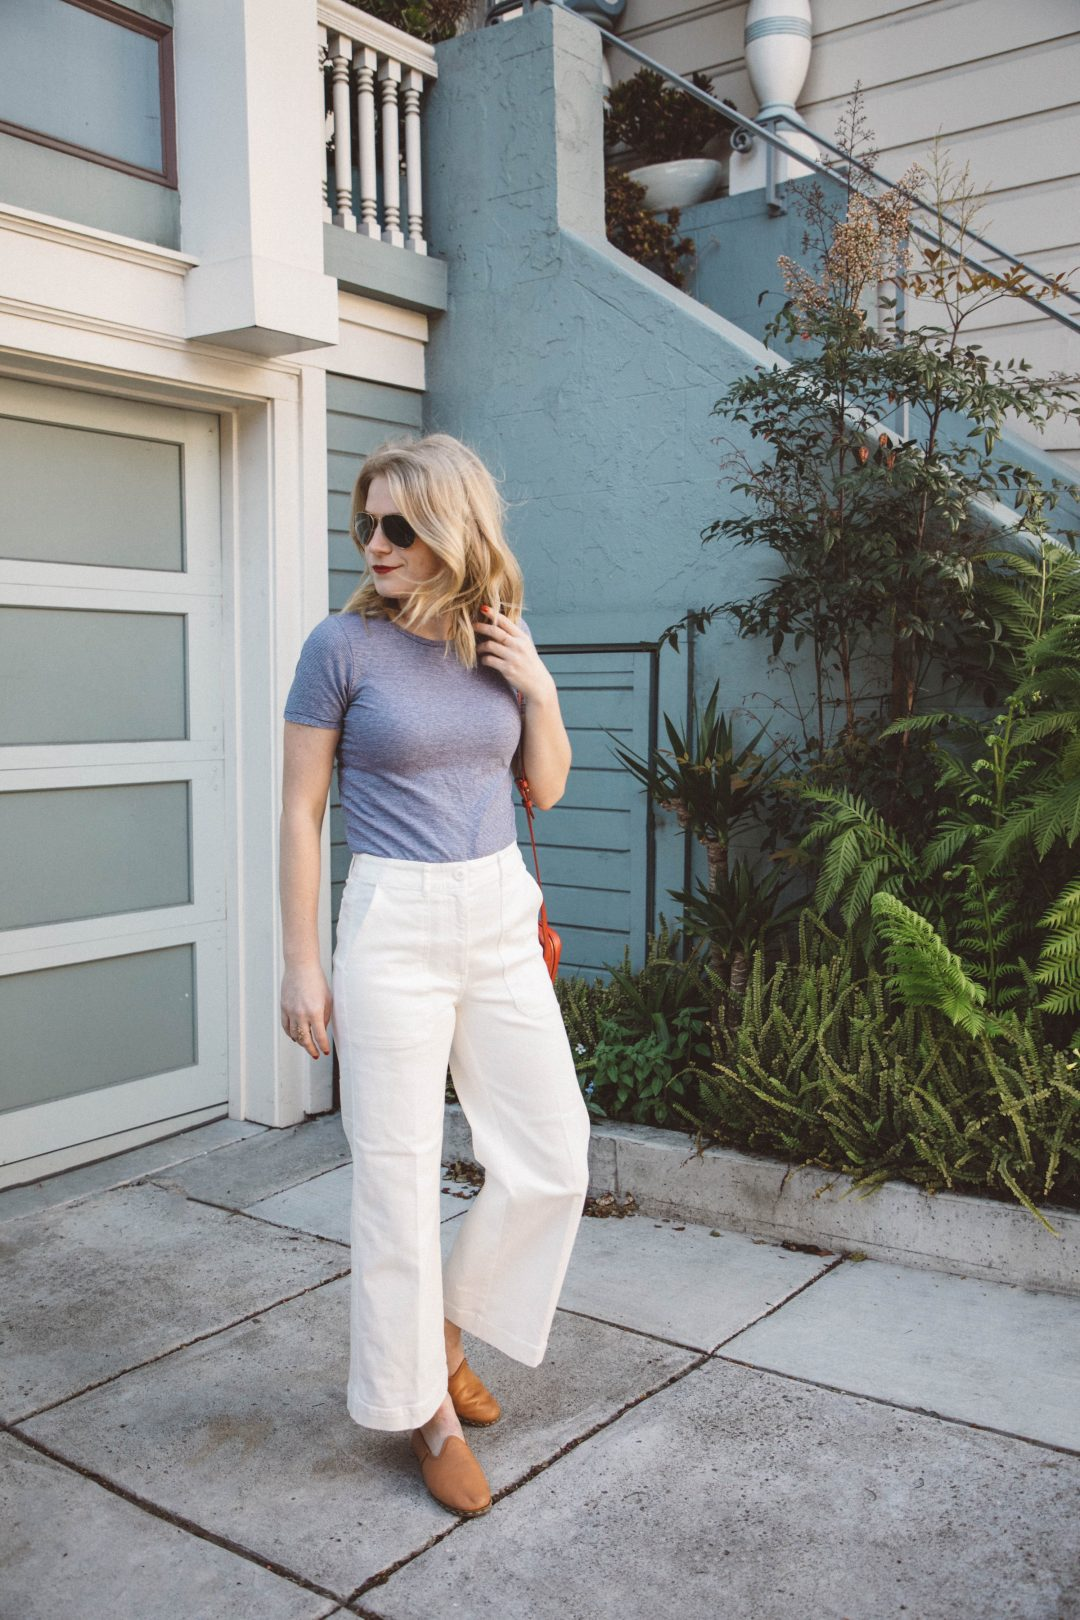 Everlane Wide Leg Crop Pants paired with an Everlane Striped Tee makes for the perfect early summer look.